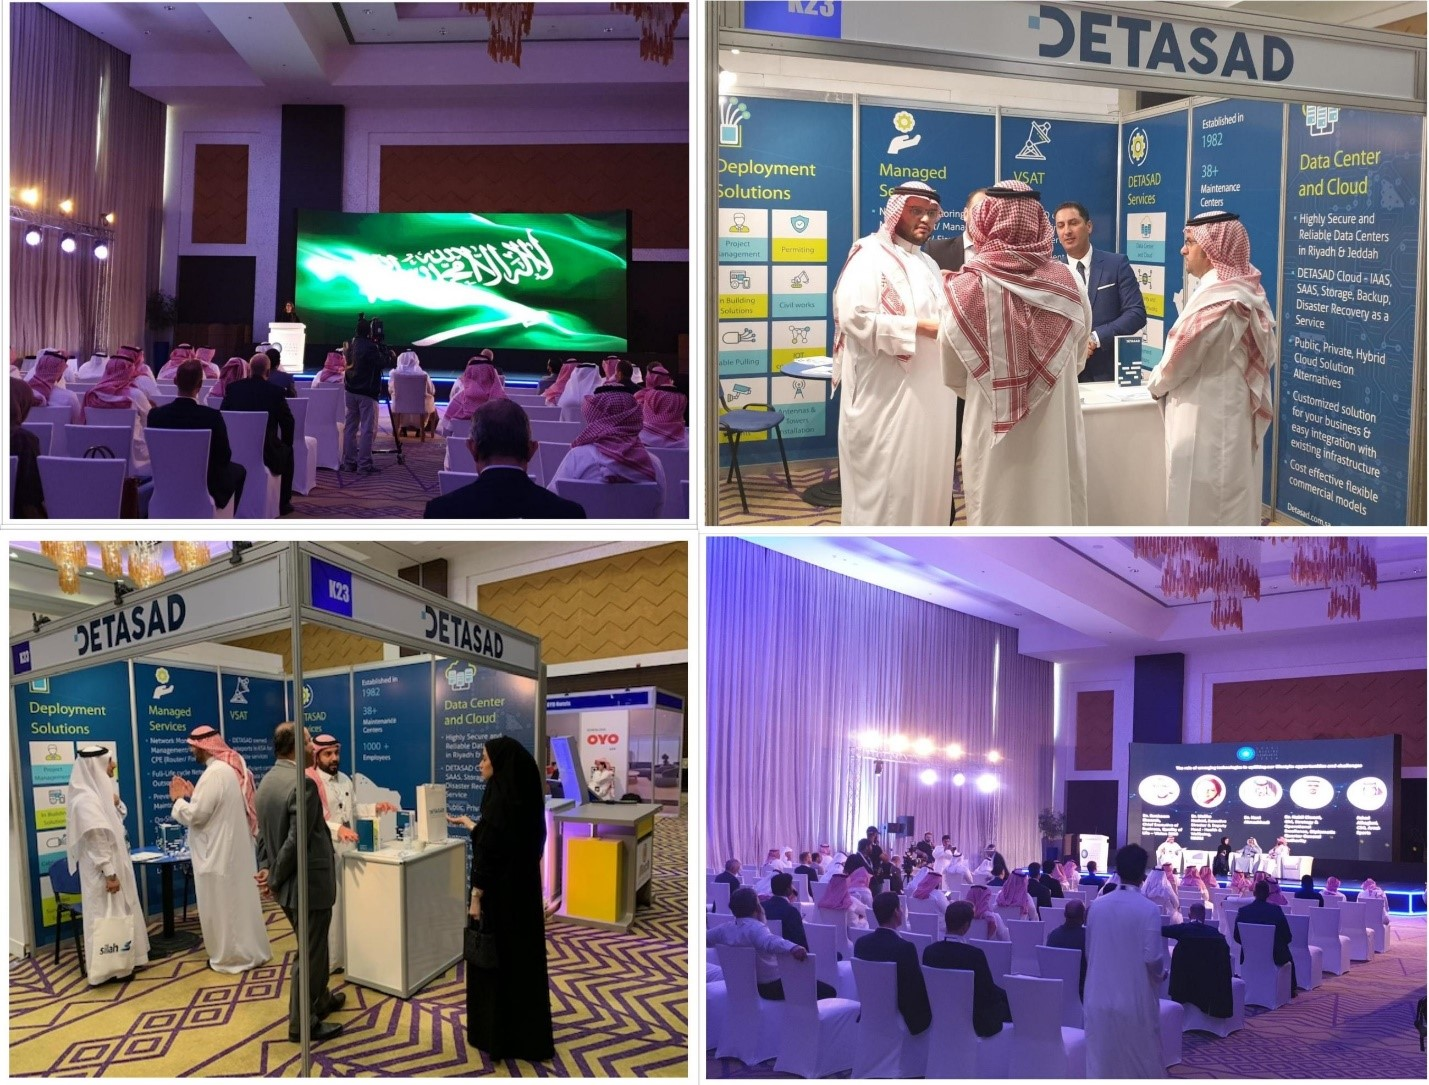 DETASAD is delighted to sponsor the Saudi Emerging Technologies Forum in Riyadh